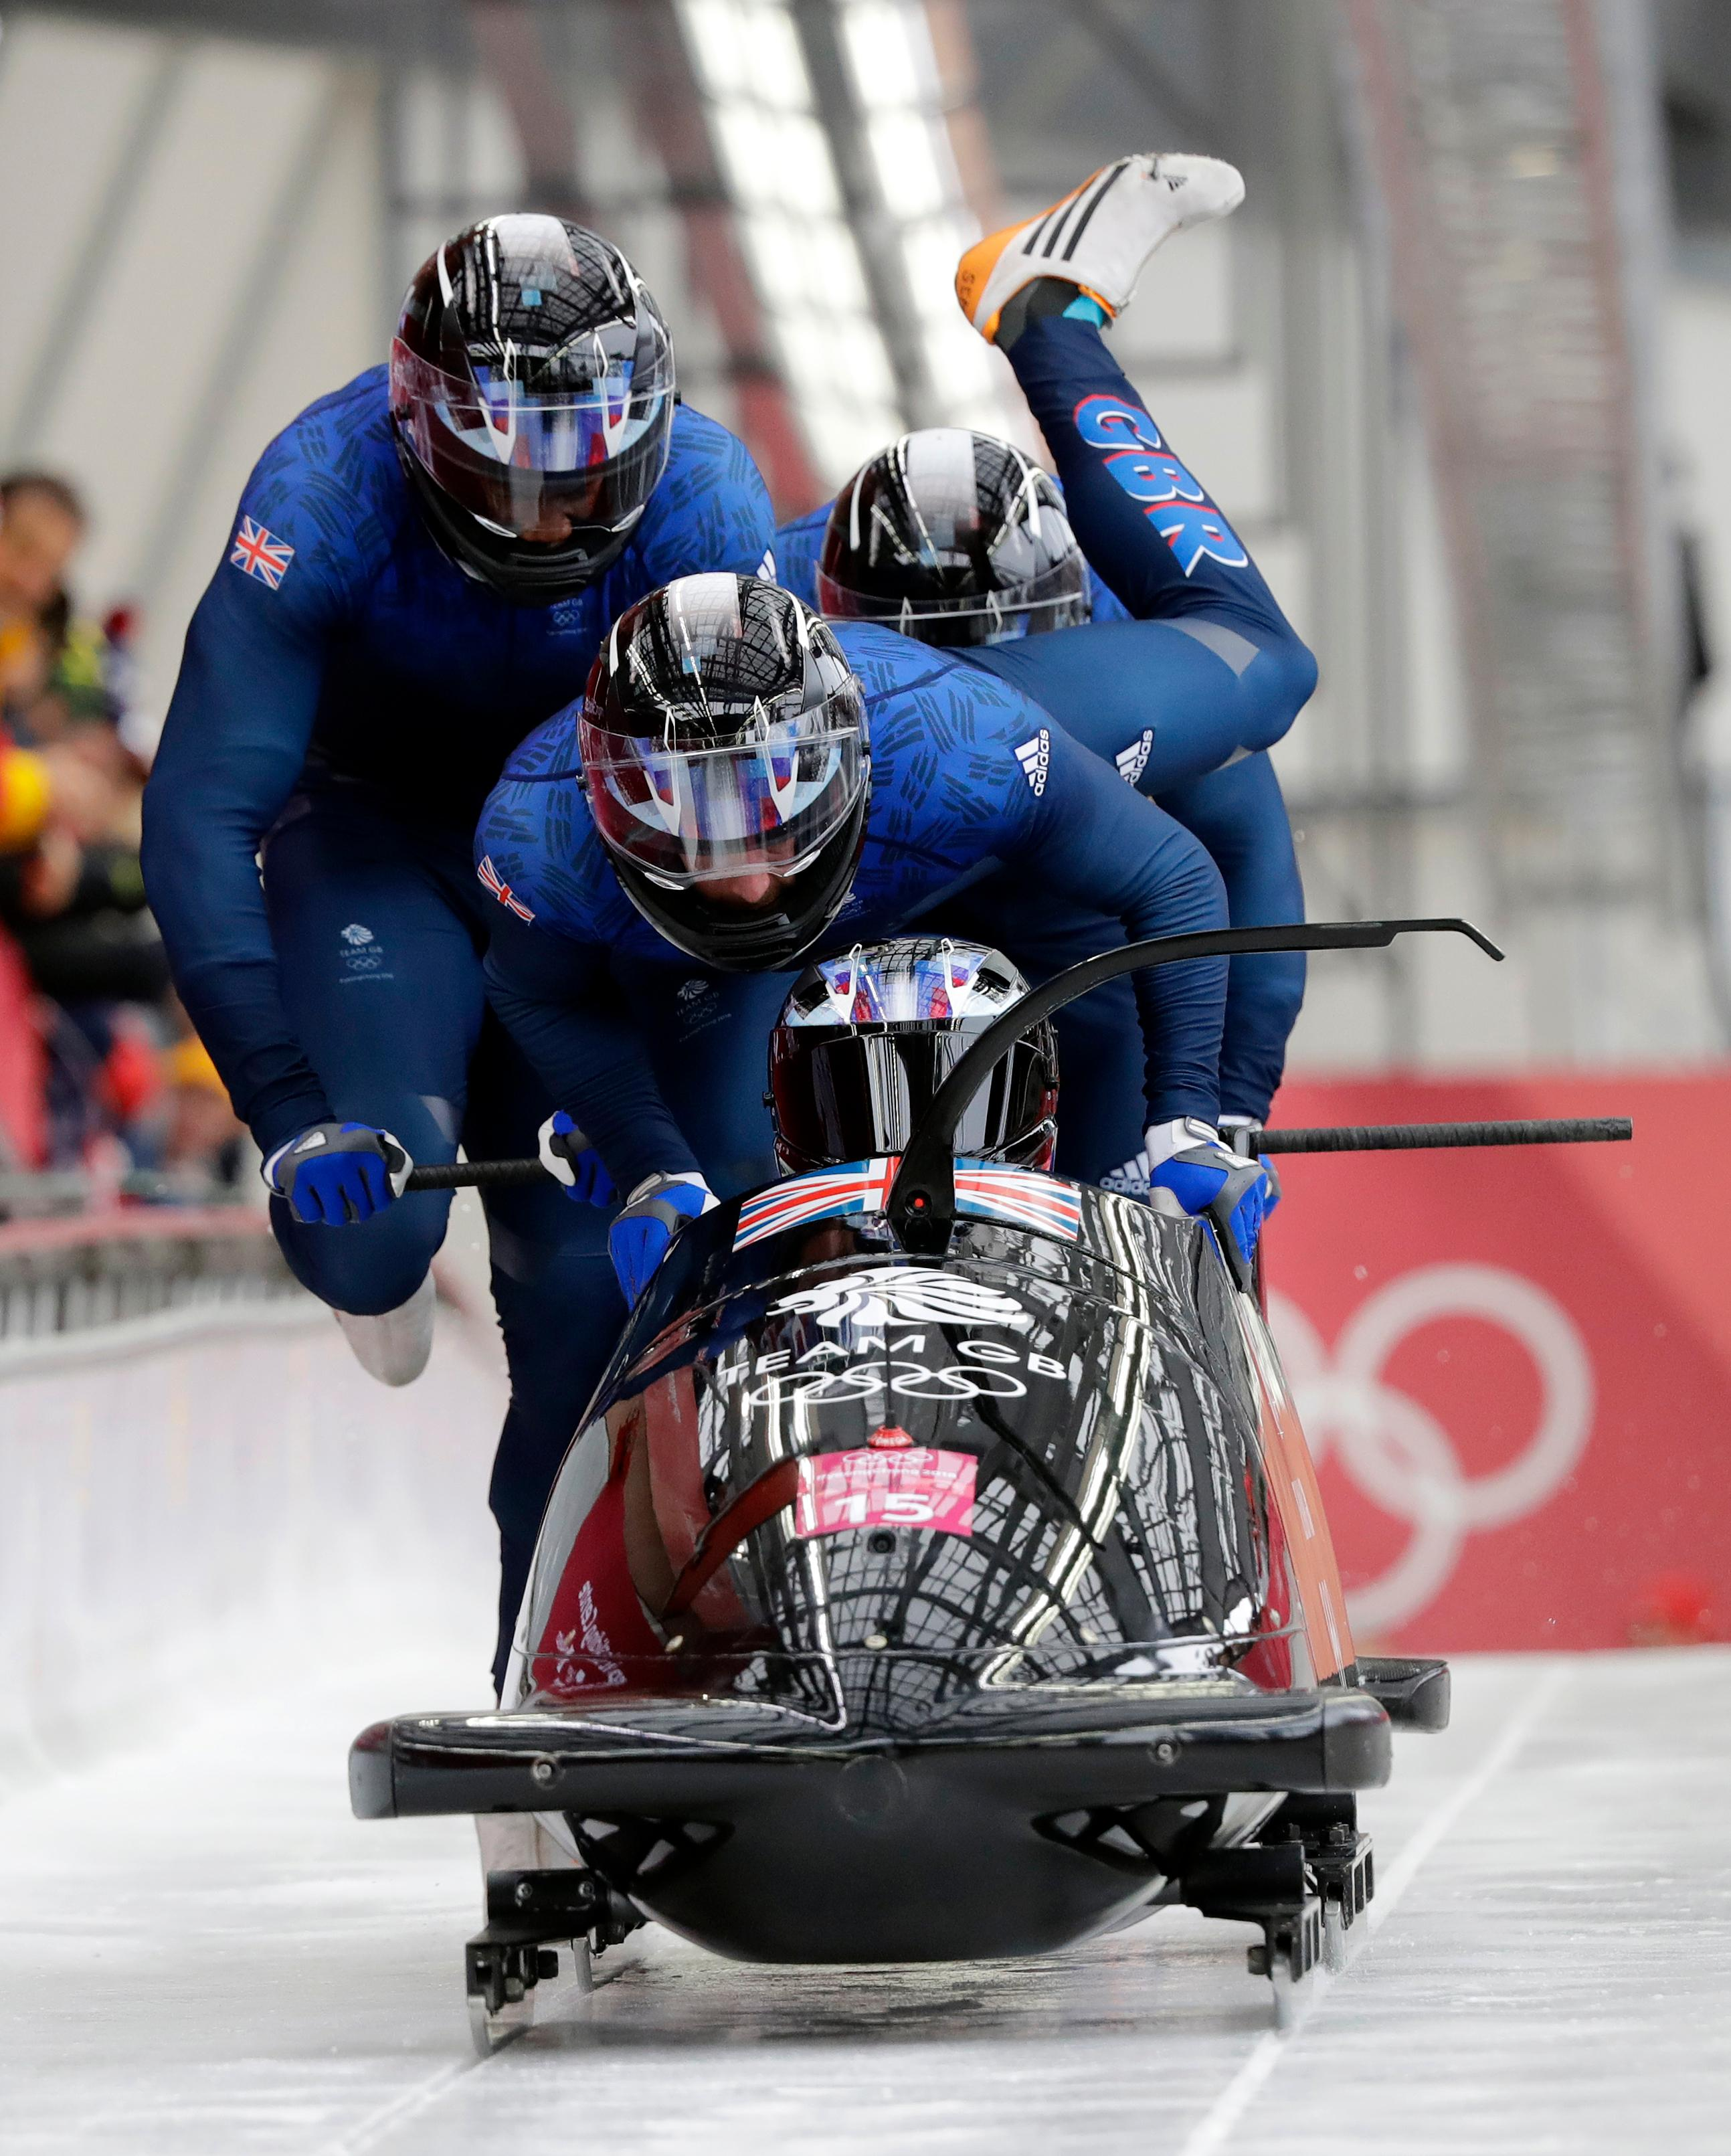 Driver Lamin Deen, Andrew Matthews, Toby Olubi and Ben Simons of Britain start their heat on the first day of four-man bobsled competition at the 2018 Winter Olympics in Pyeongchang, South Korea, Saturday, Feb. 24, 2018. (AP Photo/Wong Maye-E)